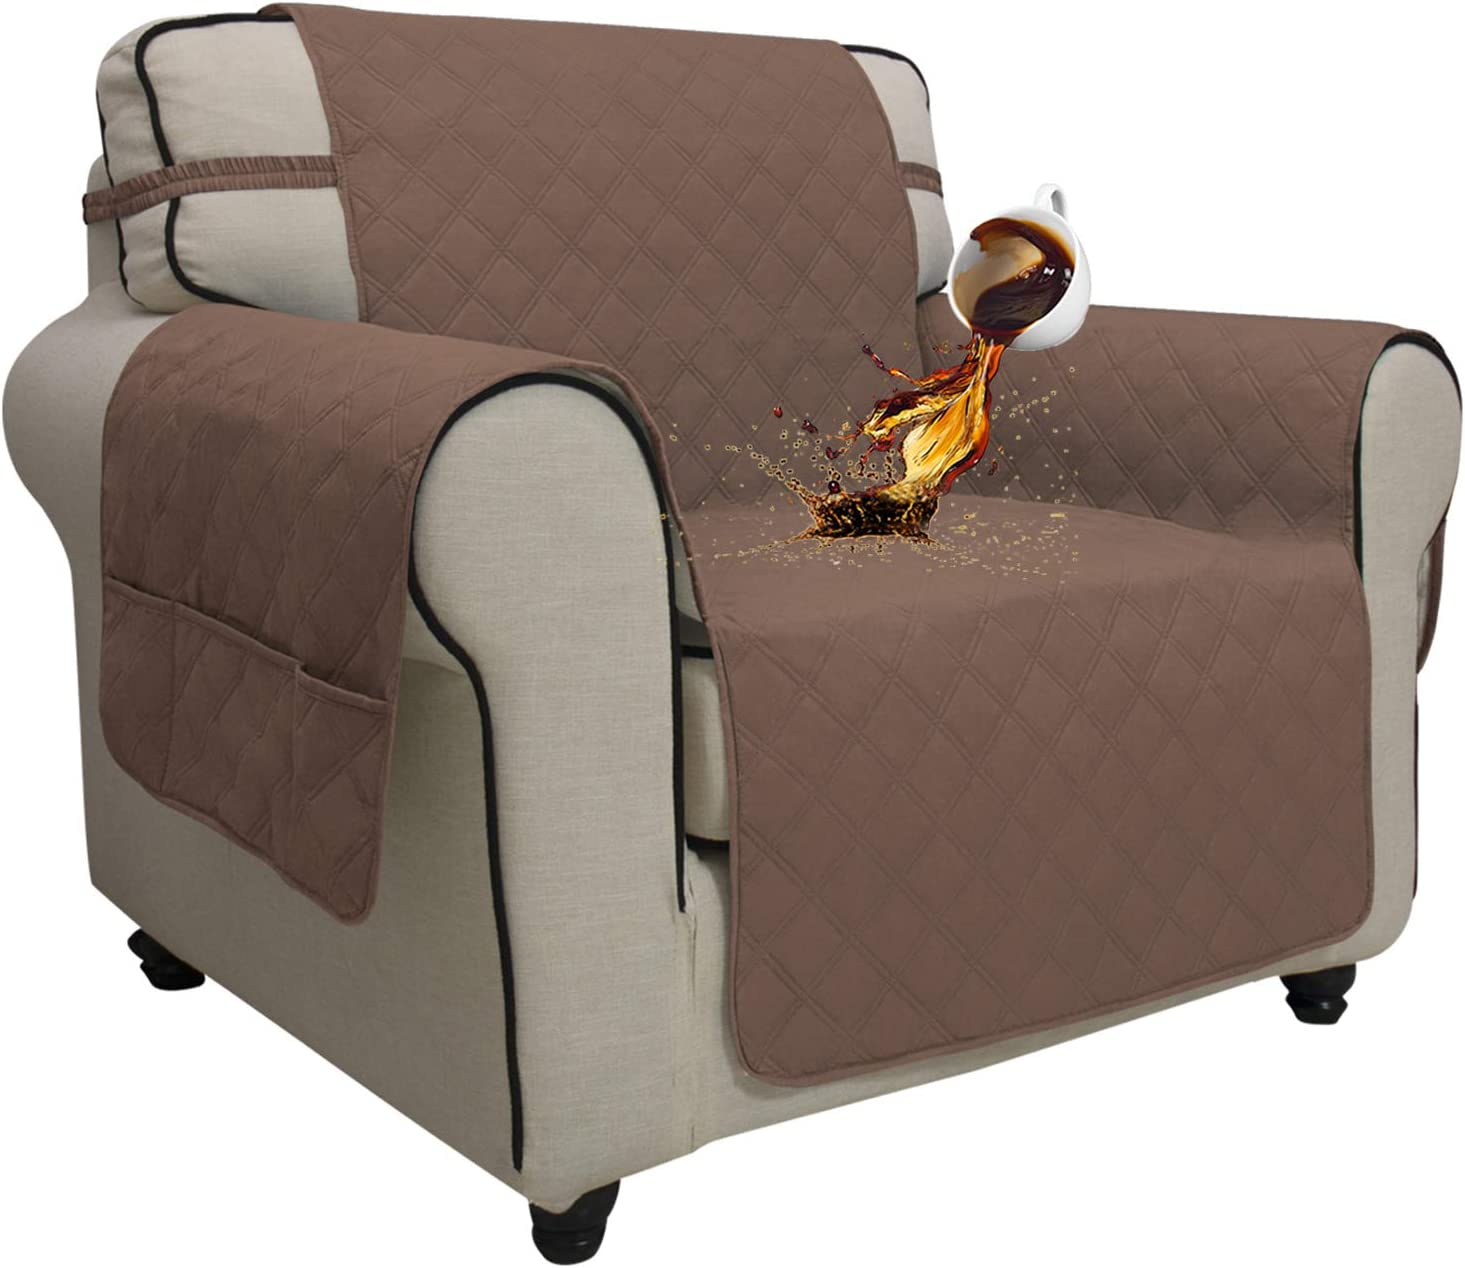 Easy-Going Sofa Slipcover Chair Cover Waterproof Couch Cover Furniture Protector Sofa Cover Pets Covers Seamless Whole Piece Non-Slip Fabric Pets Kids Children Dog Cat (Chair,Brown